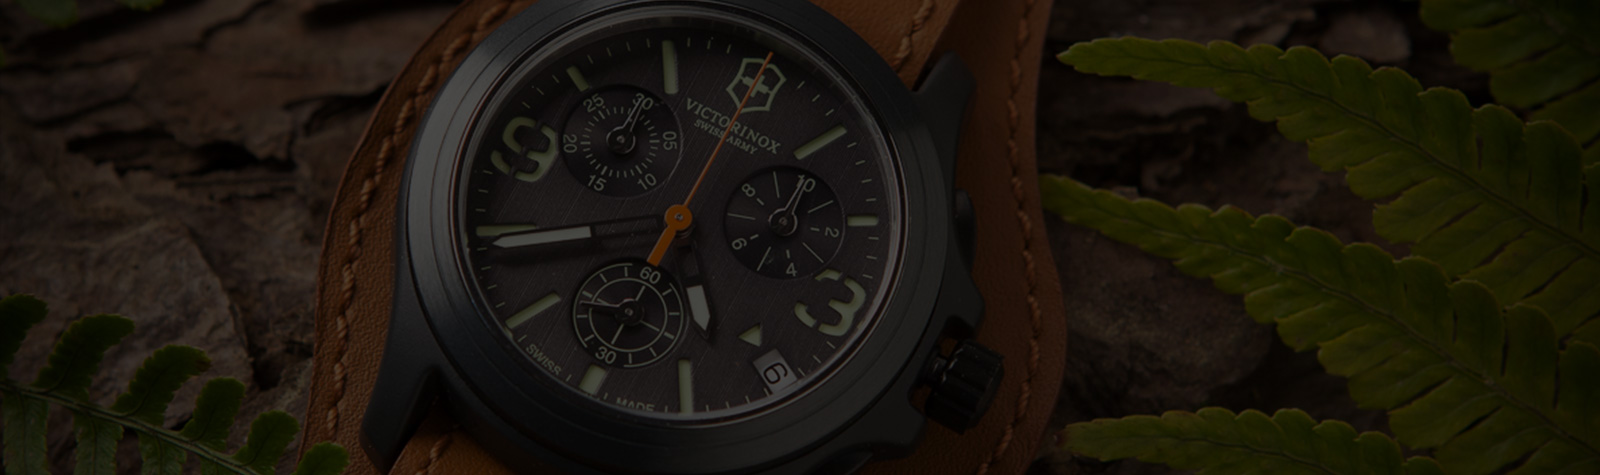 MEET THE WATCH: Victorinox Swiss Army Original Chronograph Limited Edition